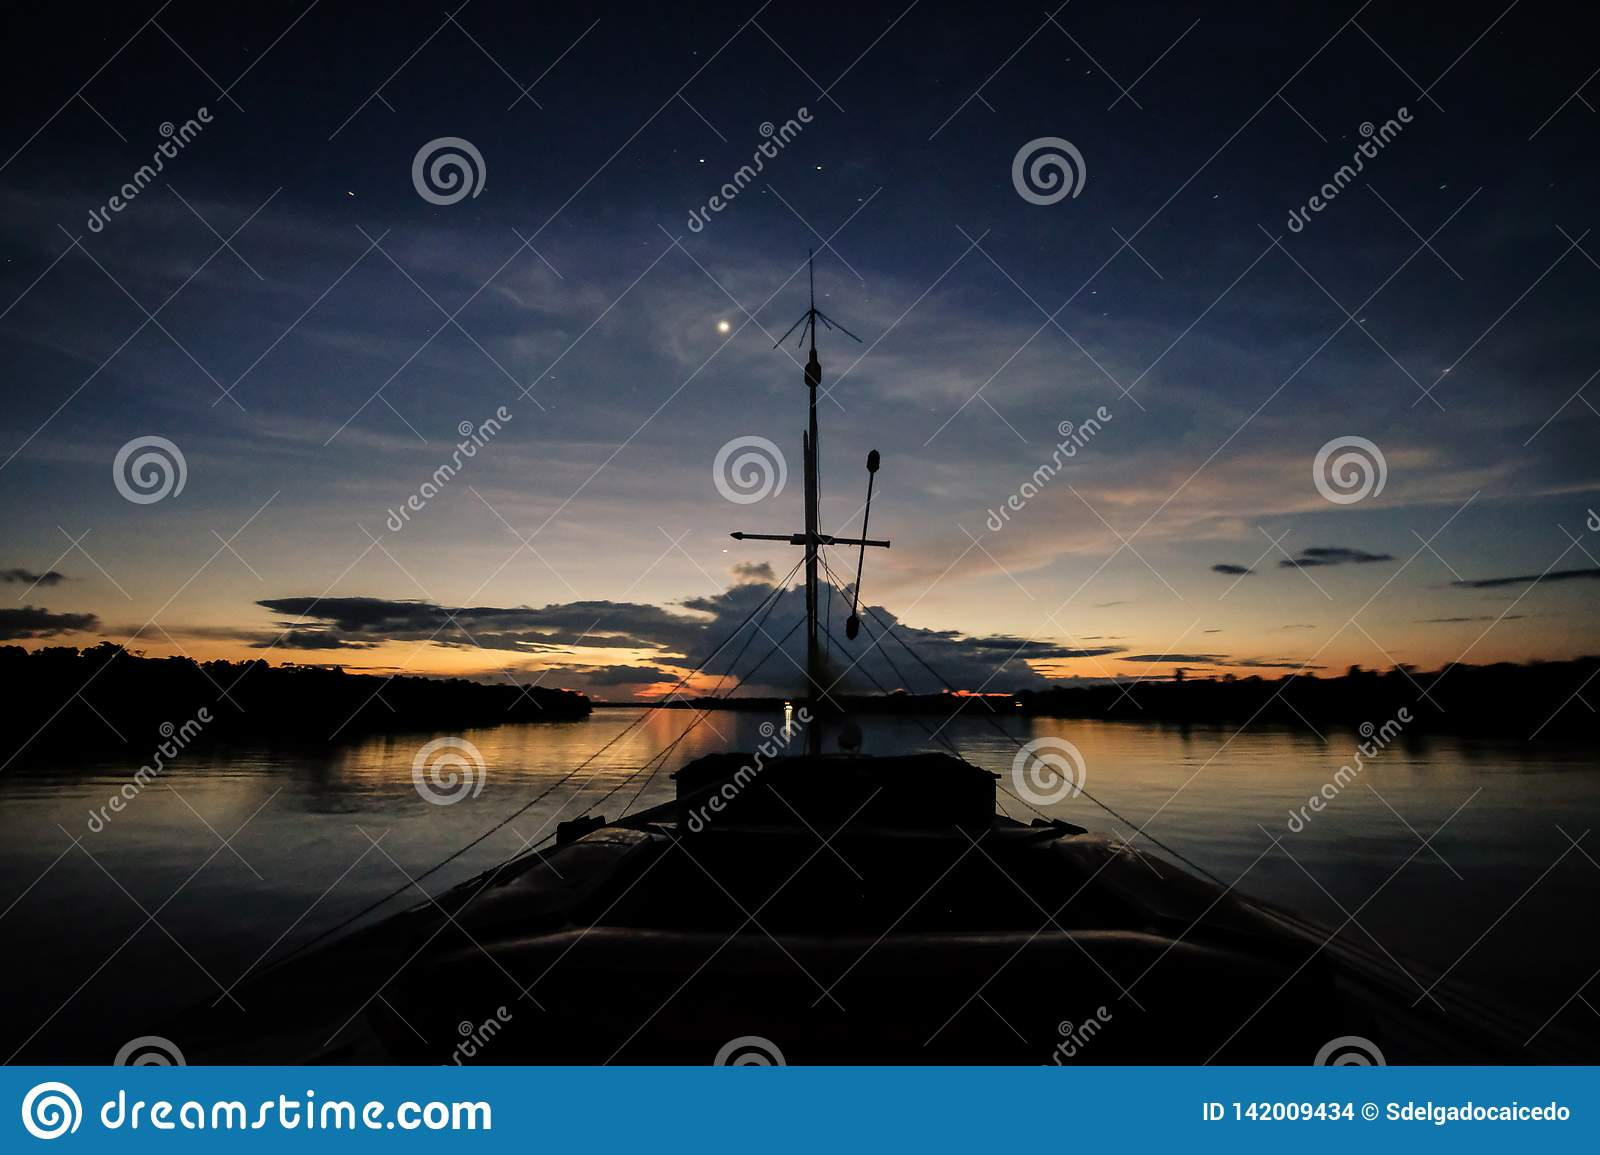 A boat navigates the Javari River after the sunset